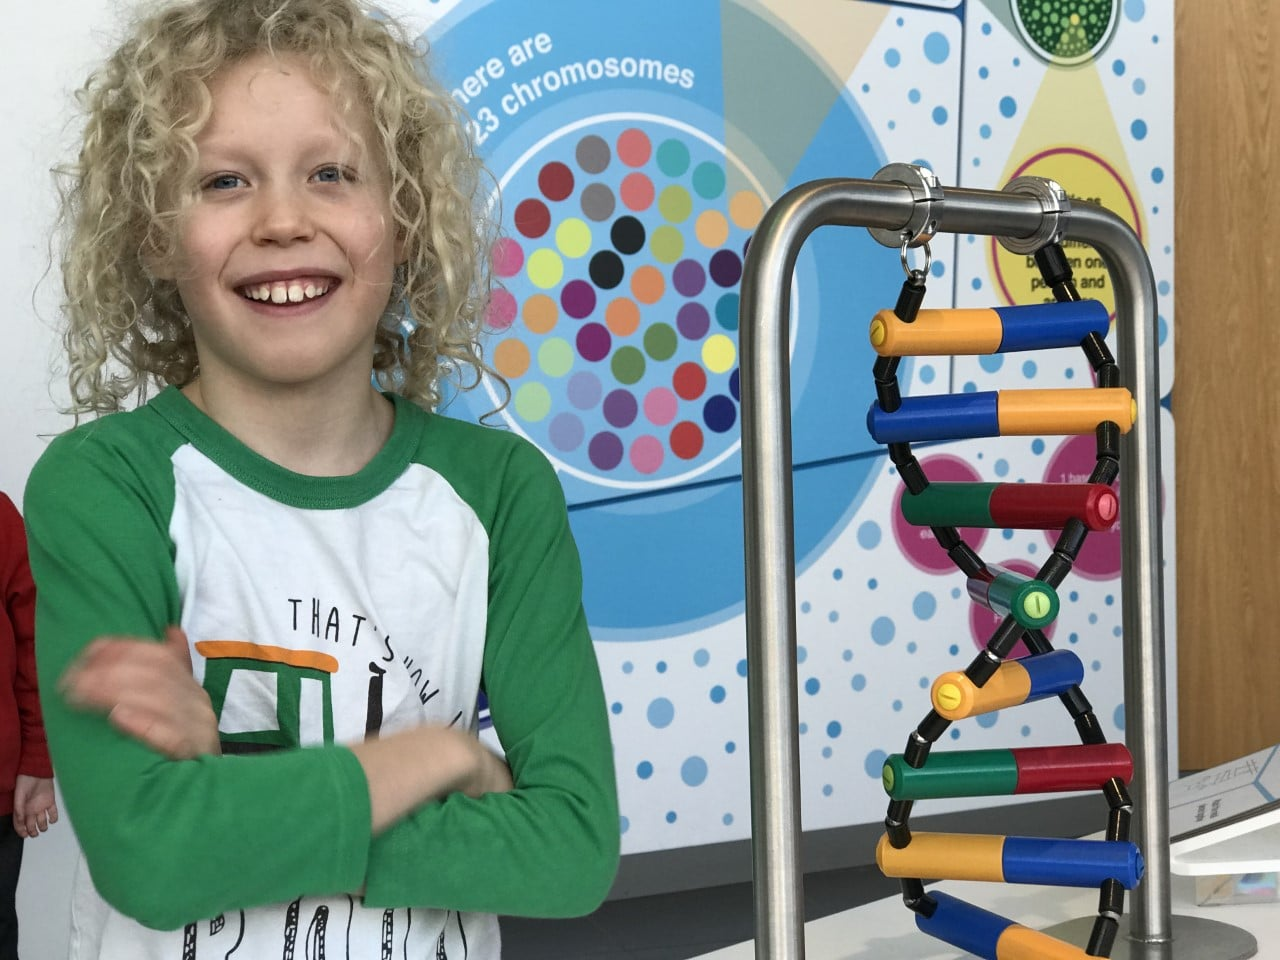 child standing beside DNA model